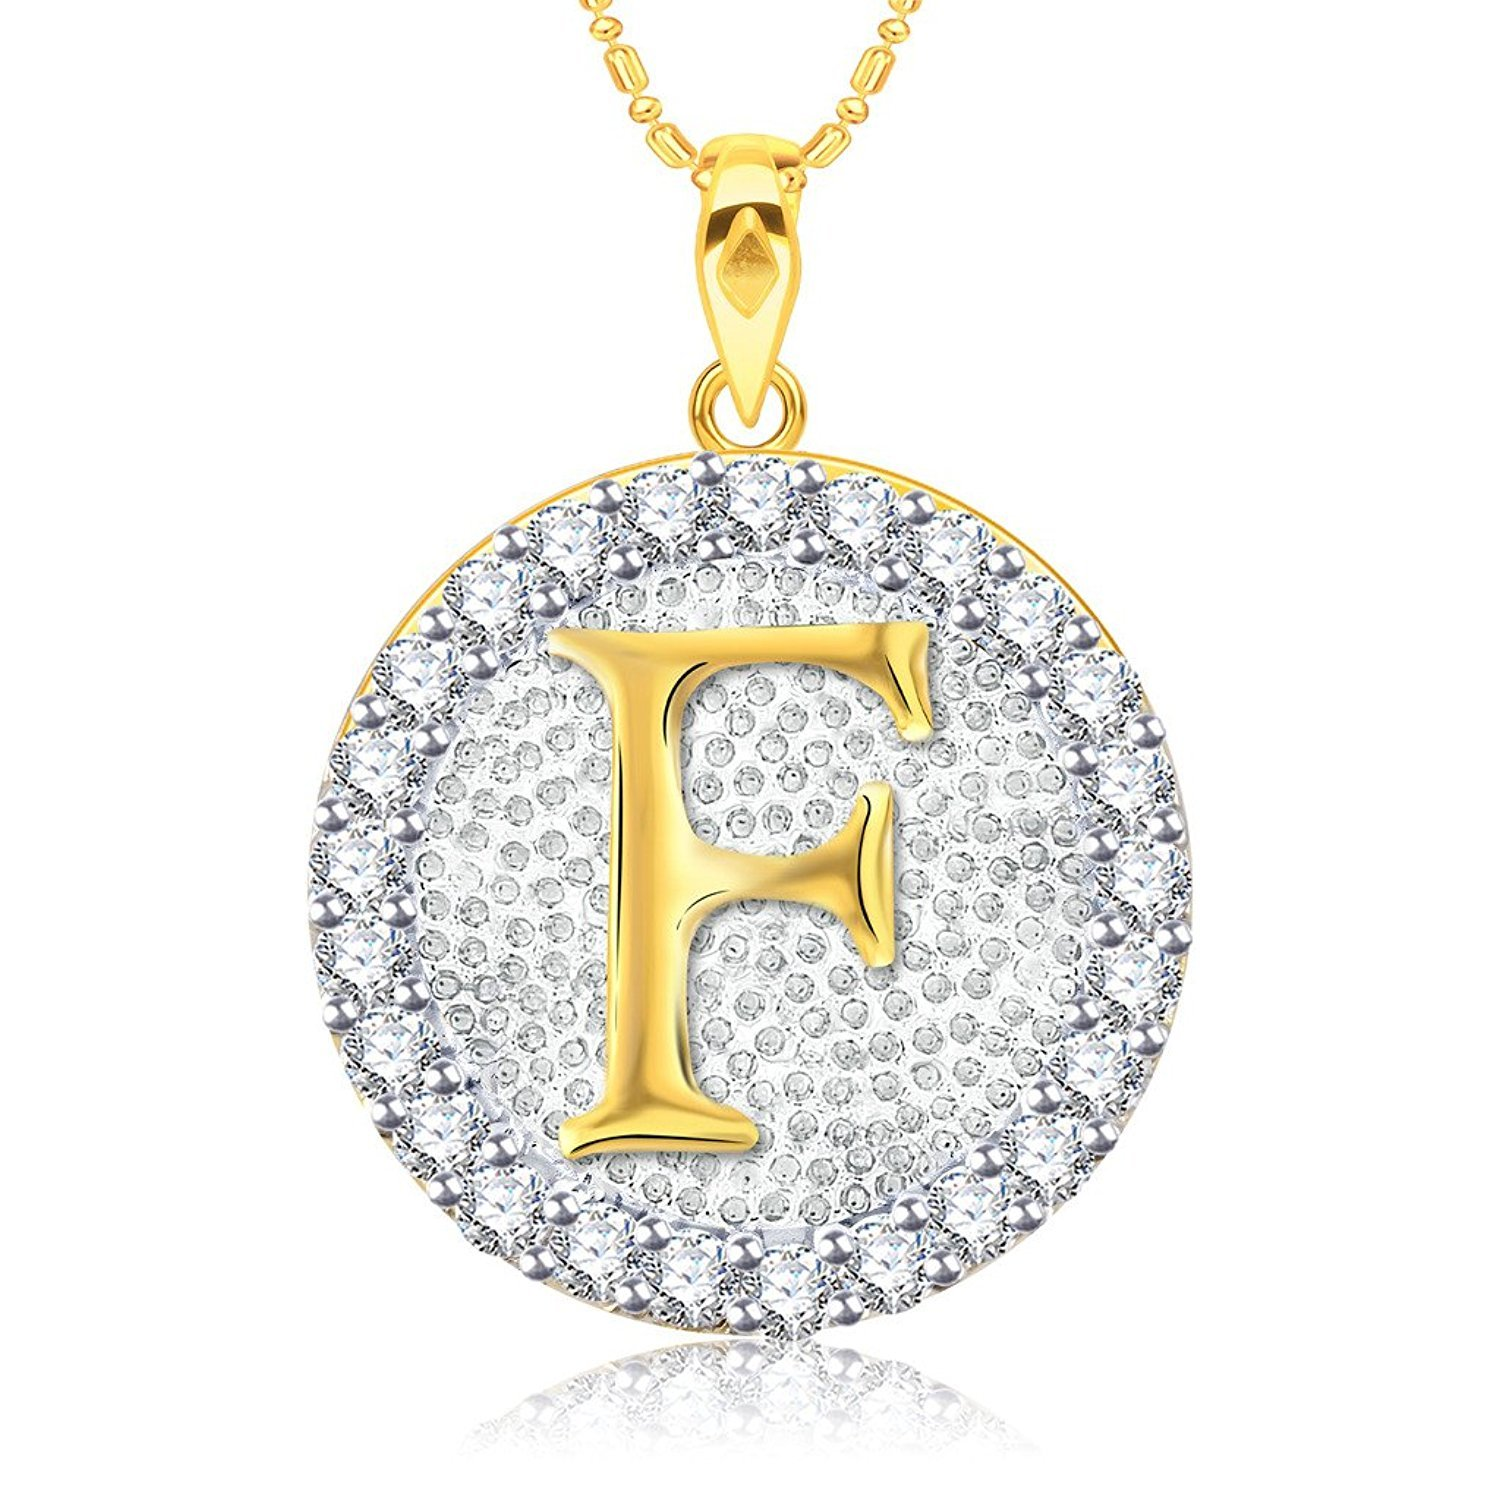 Ashley Jewels Simulated Diamond Studded Fashion Initial Alphabet Letter F Pendant Necklace in 14K Yellow Gold Plated With Box Chain